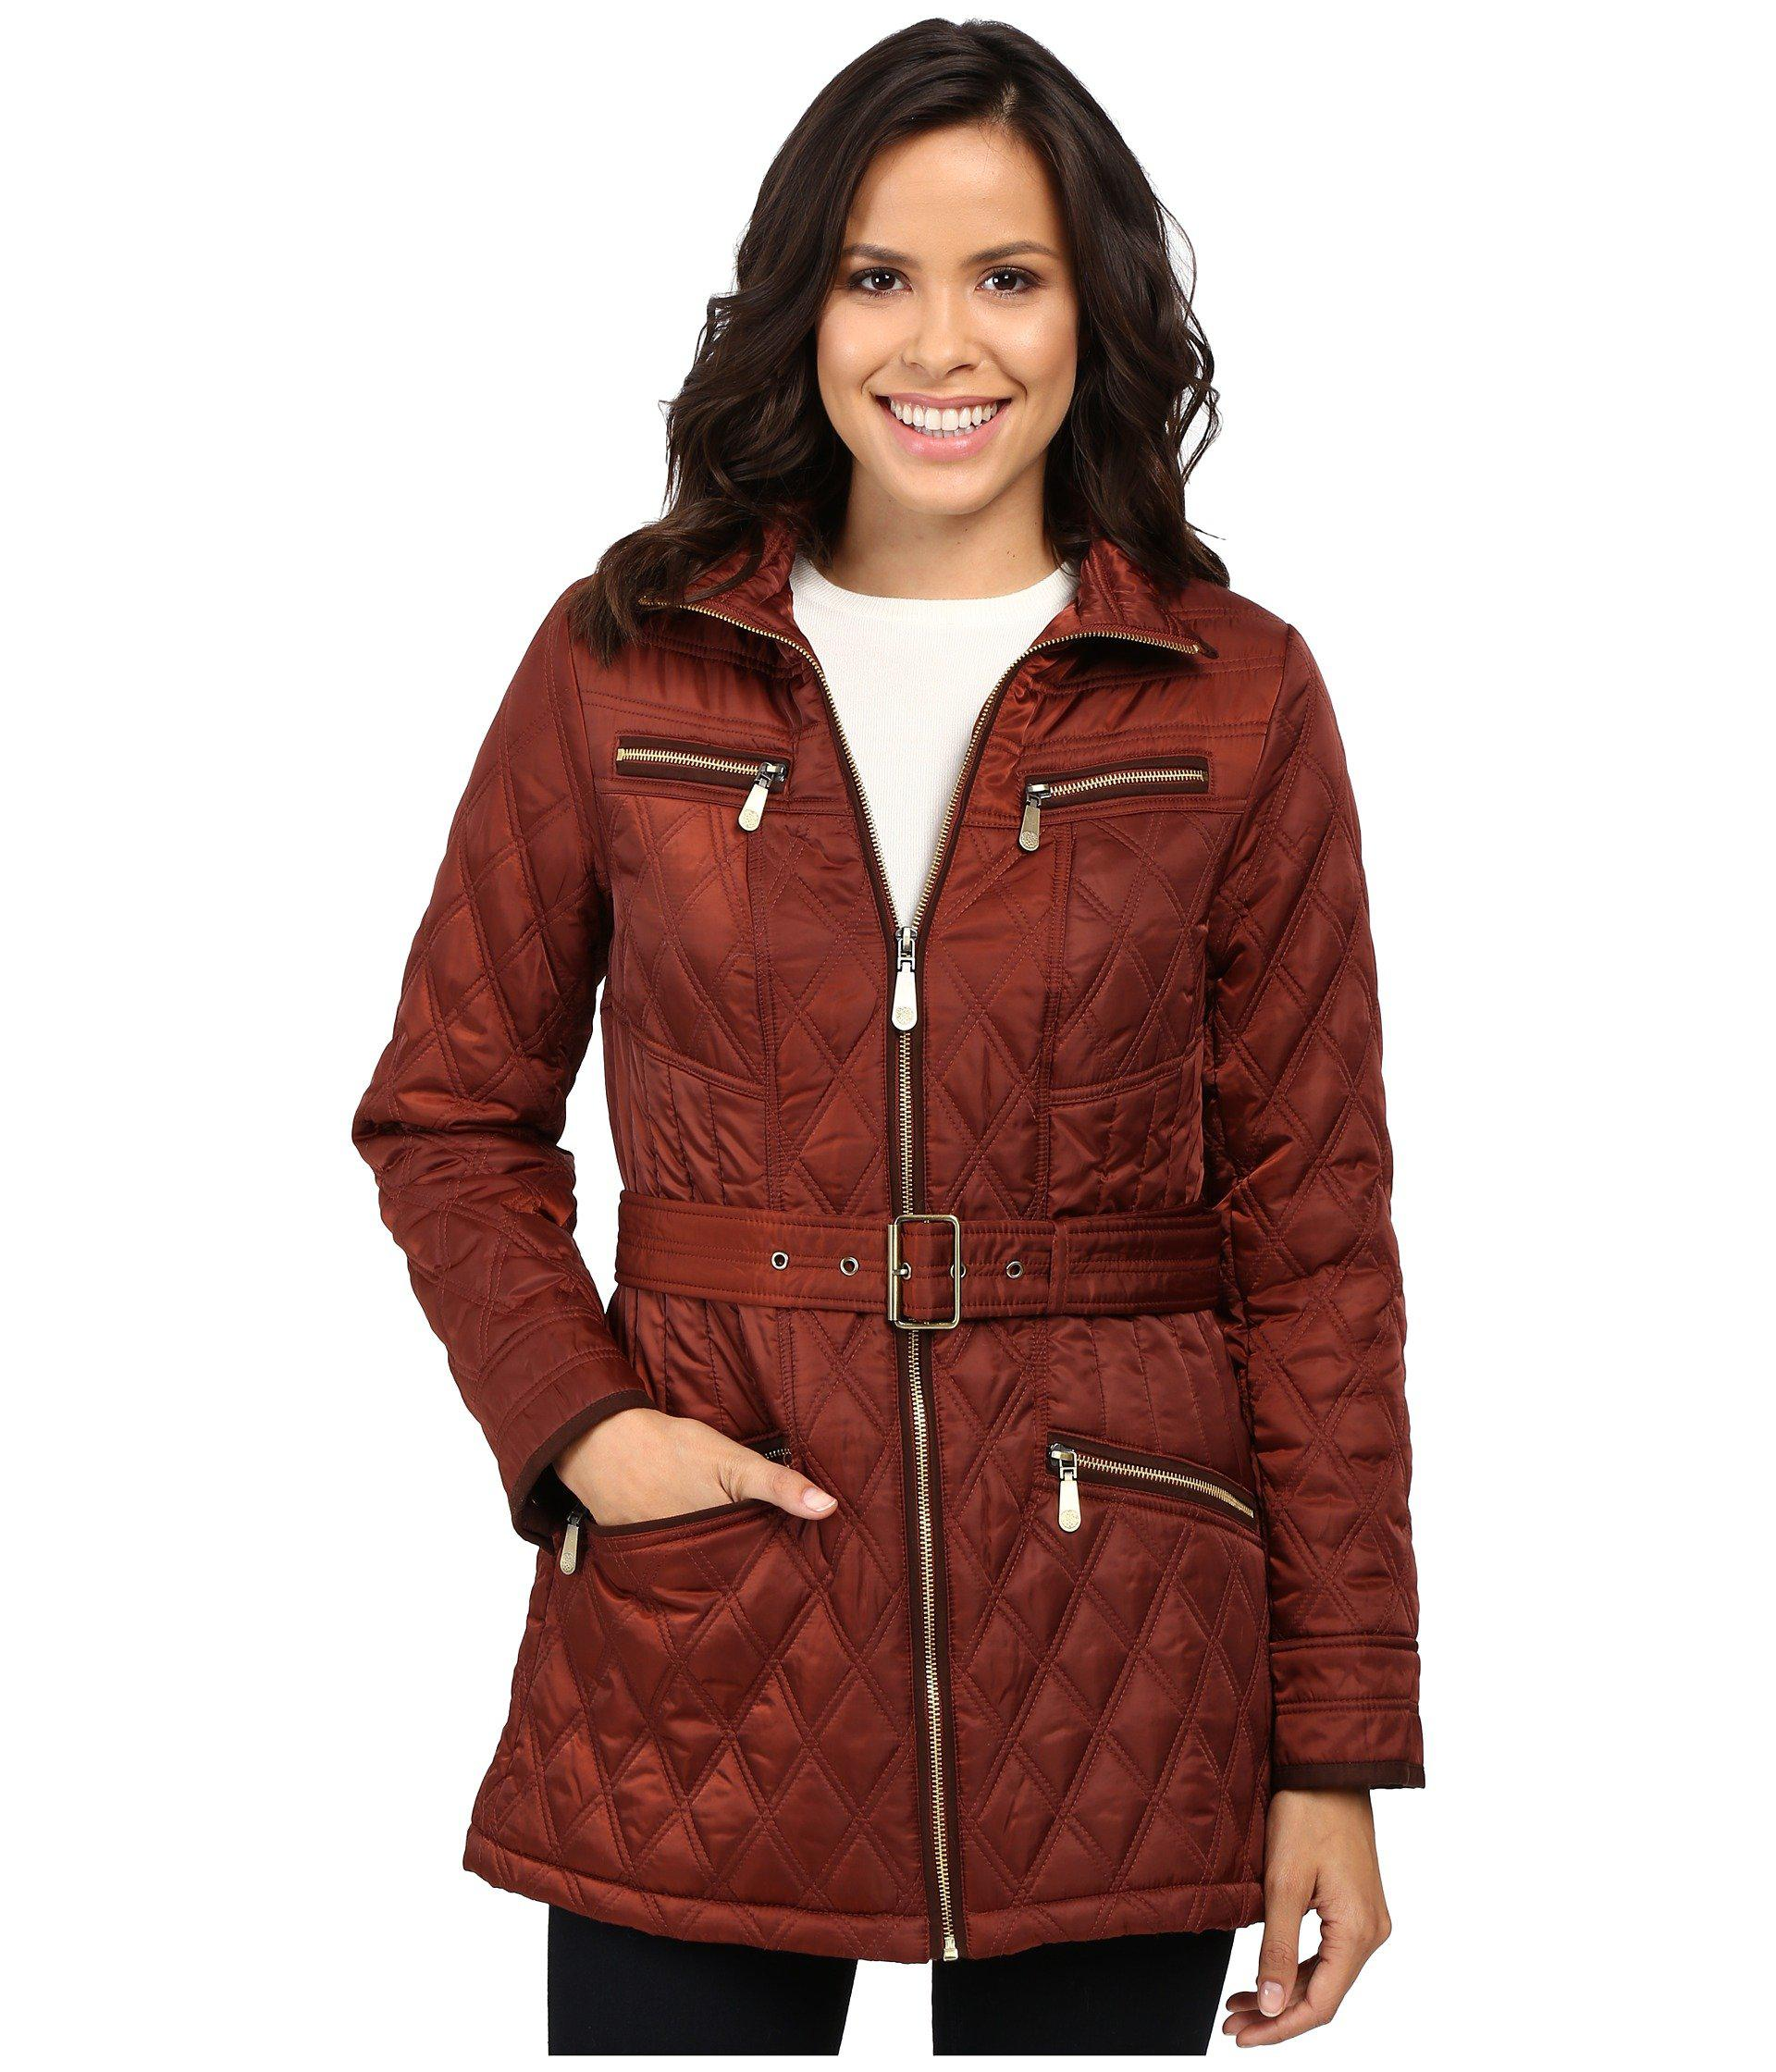 fullscreen clothing suede with quilted detail faux quilt vince camuto jacket lyst contrast view navy blue